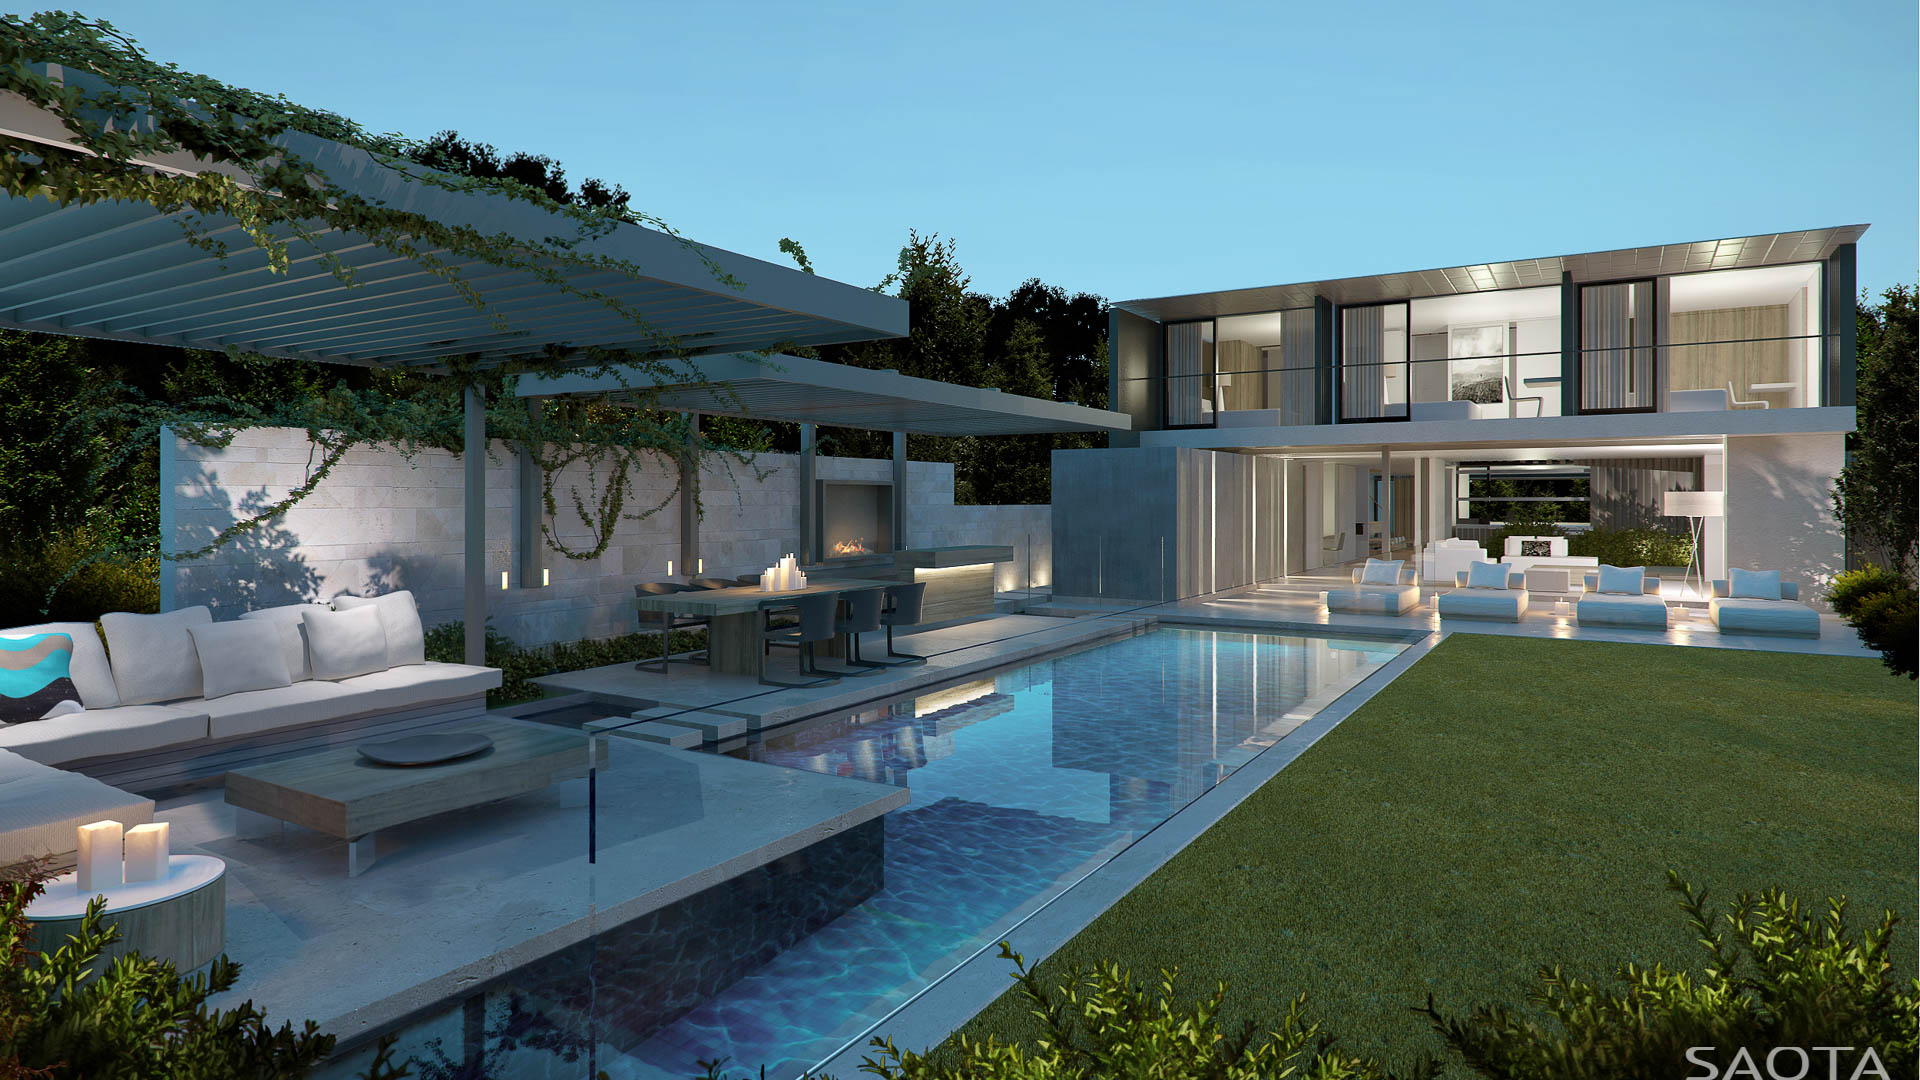 30 Yet to be Built Modern Dream Homes by SAOTA  Part 1  Architecture  Design